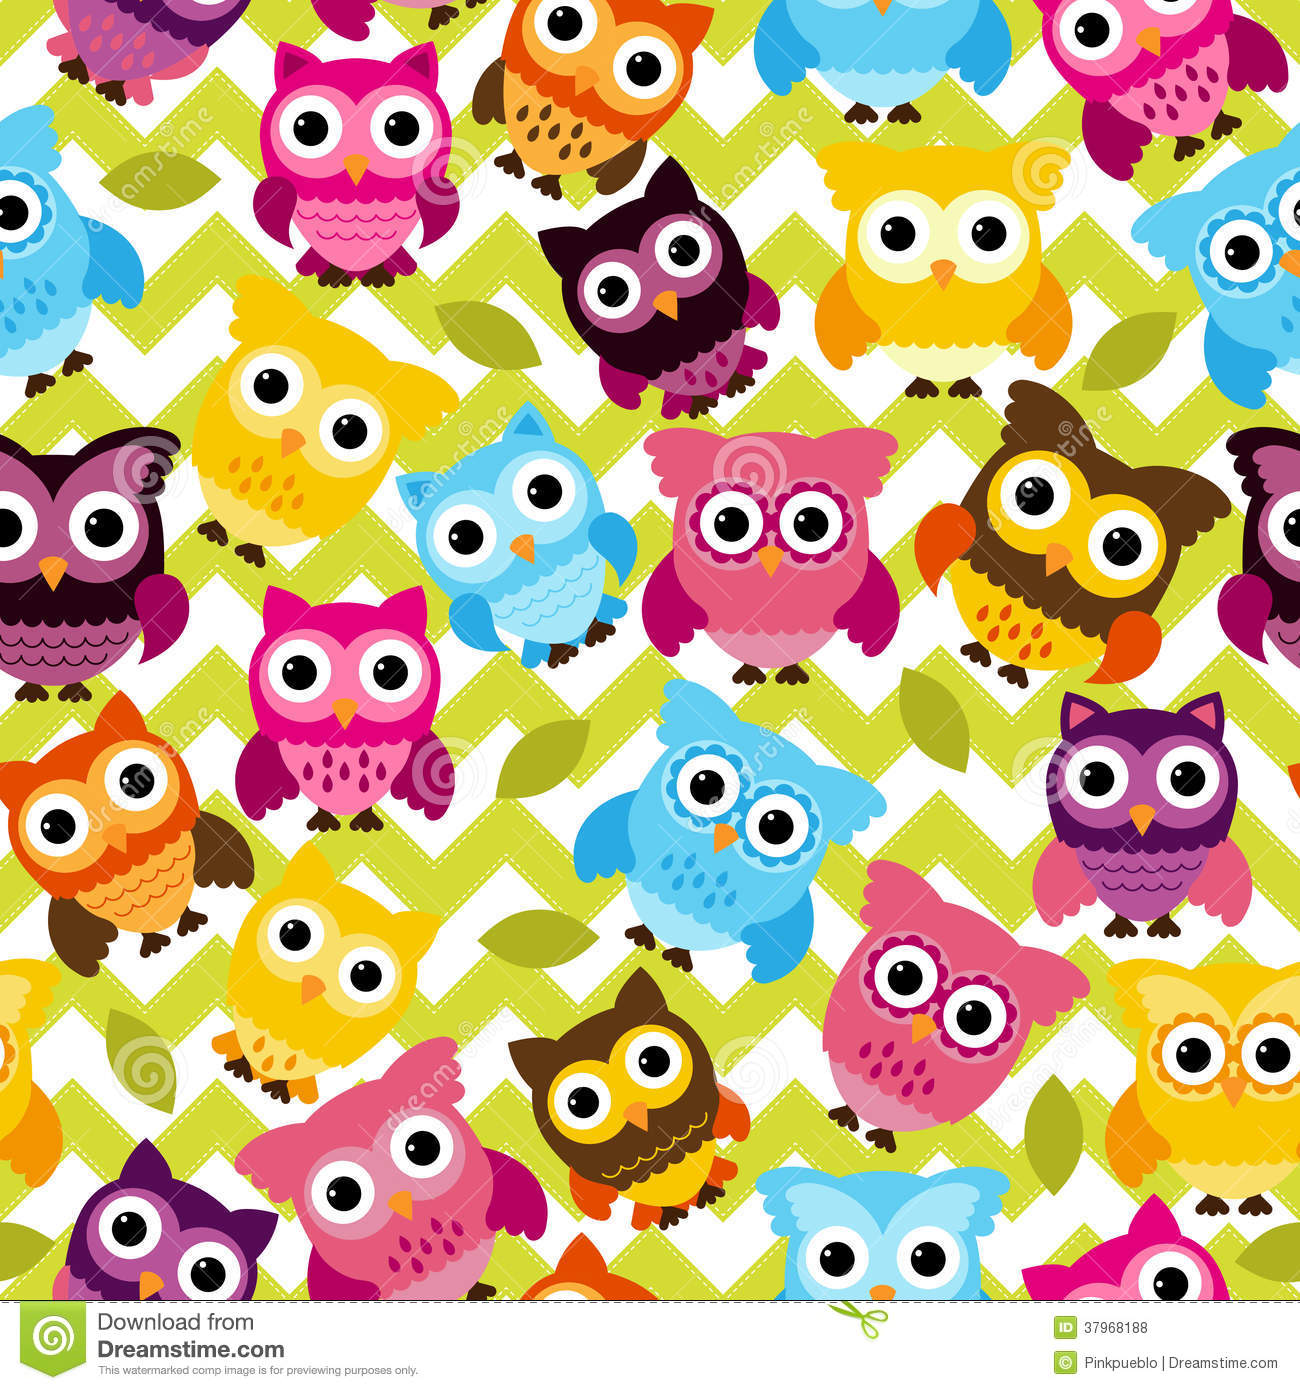 Cute Girly Chevron Wallpapers Seamless And Tileable Vector Owl Background Pattern Stock